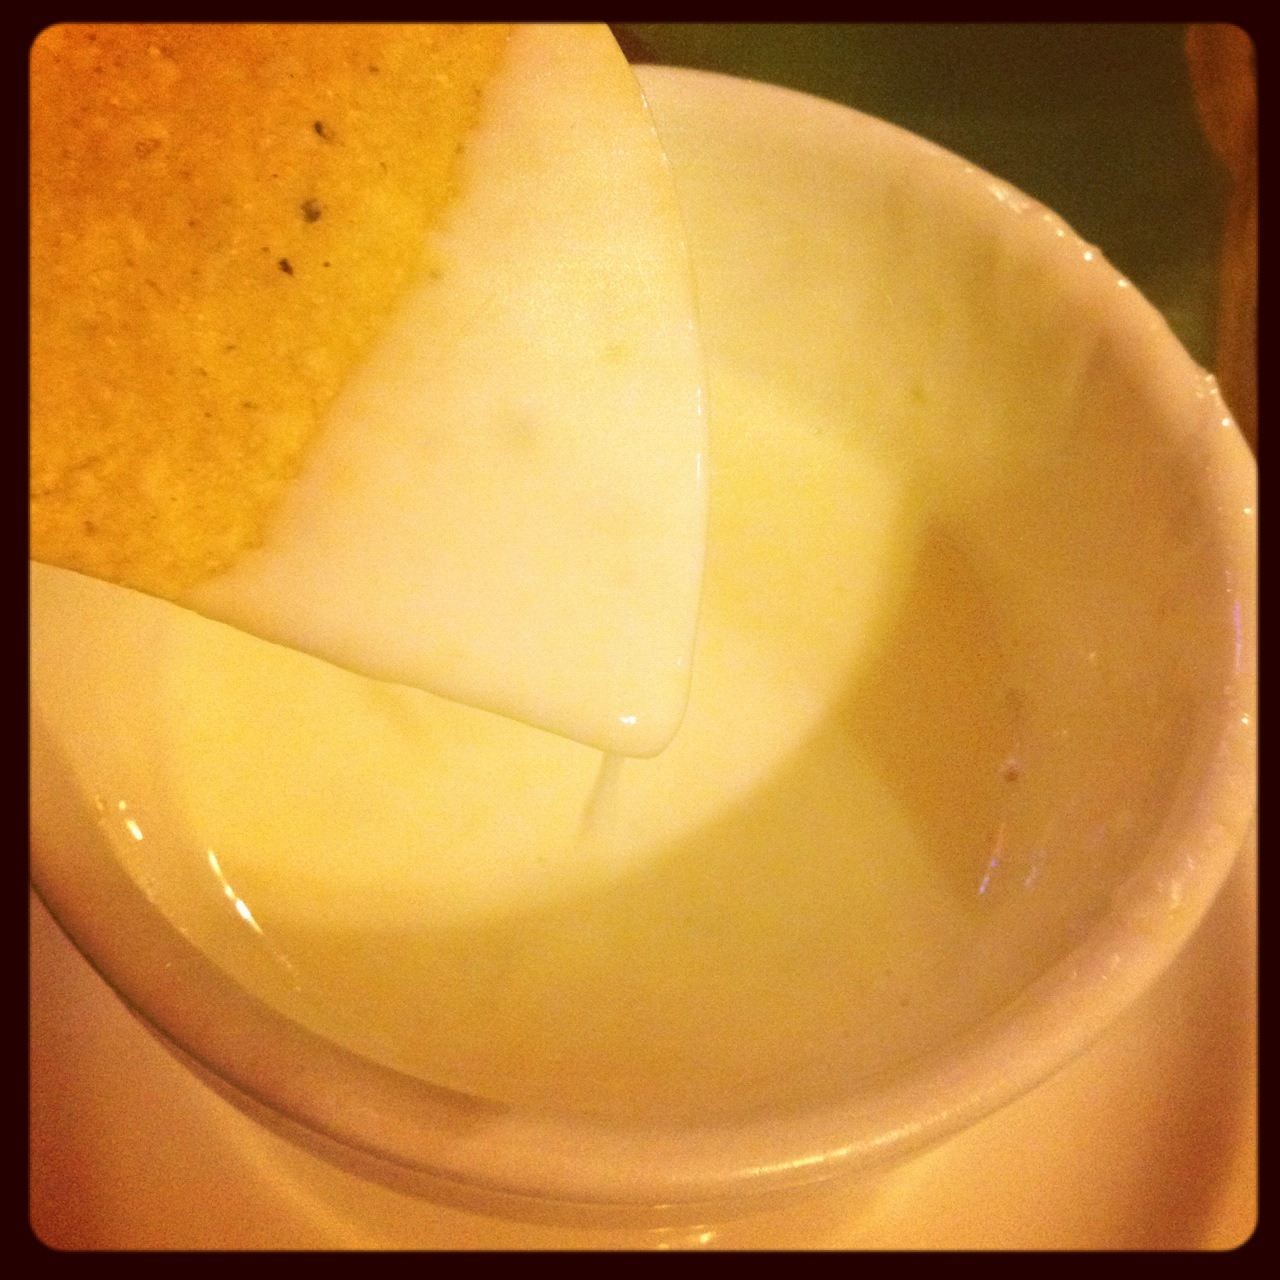 blueandnotblue:  Roadside queso in honor of somebody's impending bday ;)  way to melt my heart Boo.  i love you too.